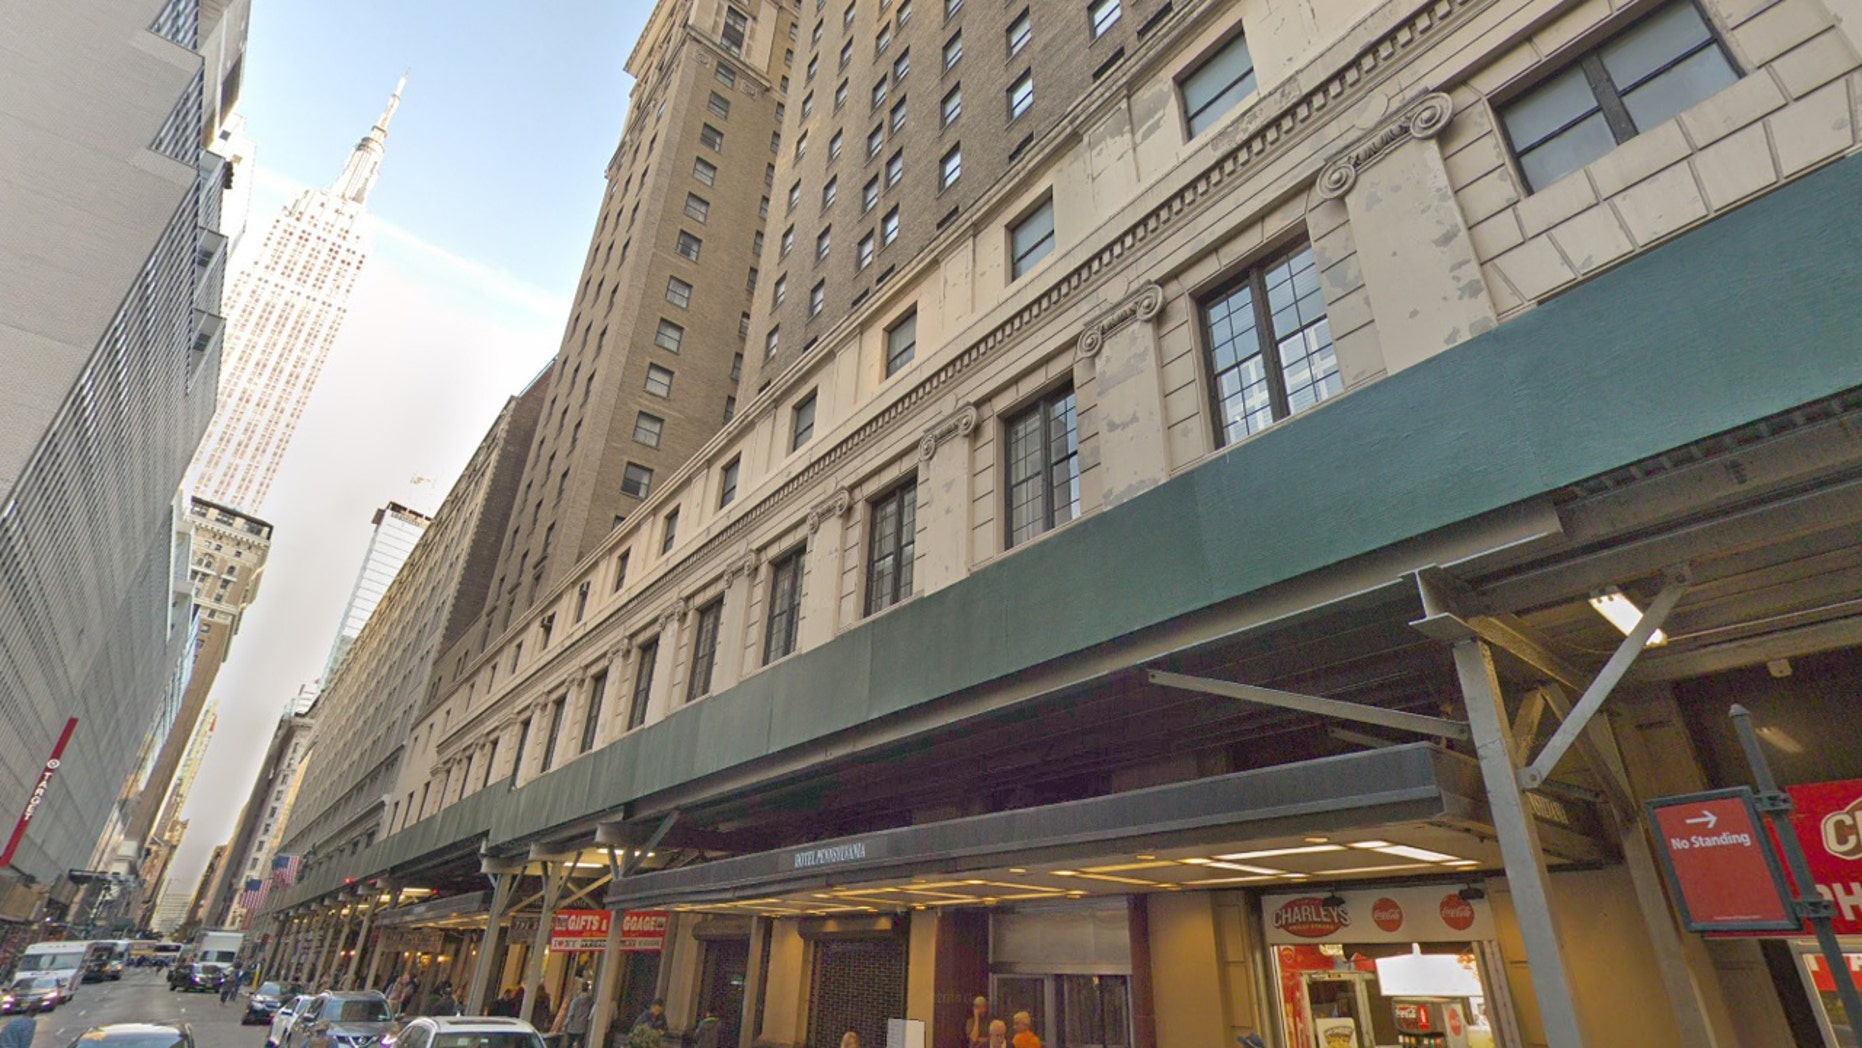 A 4-month-old boy died Saturday after he was found unconscious and unresponsive in the Hotel Pennsylvania lobby. Police apprehended two women who were with him, and they're expected to face charges.